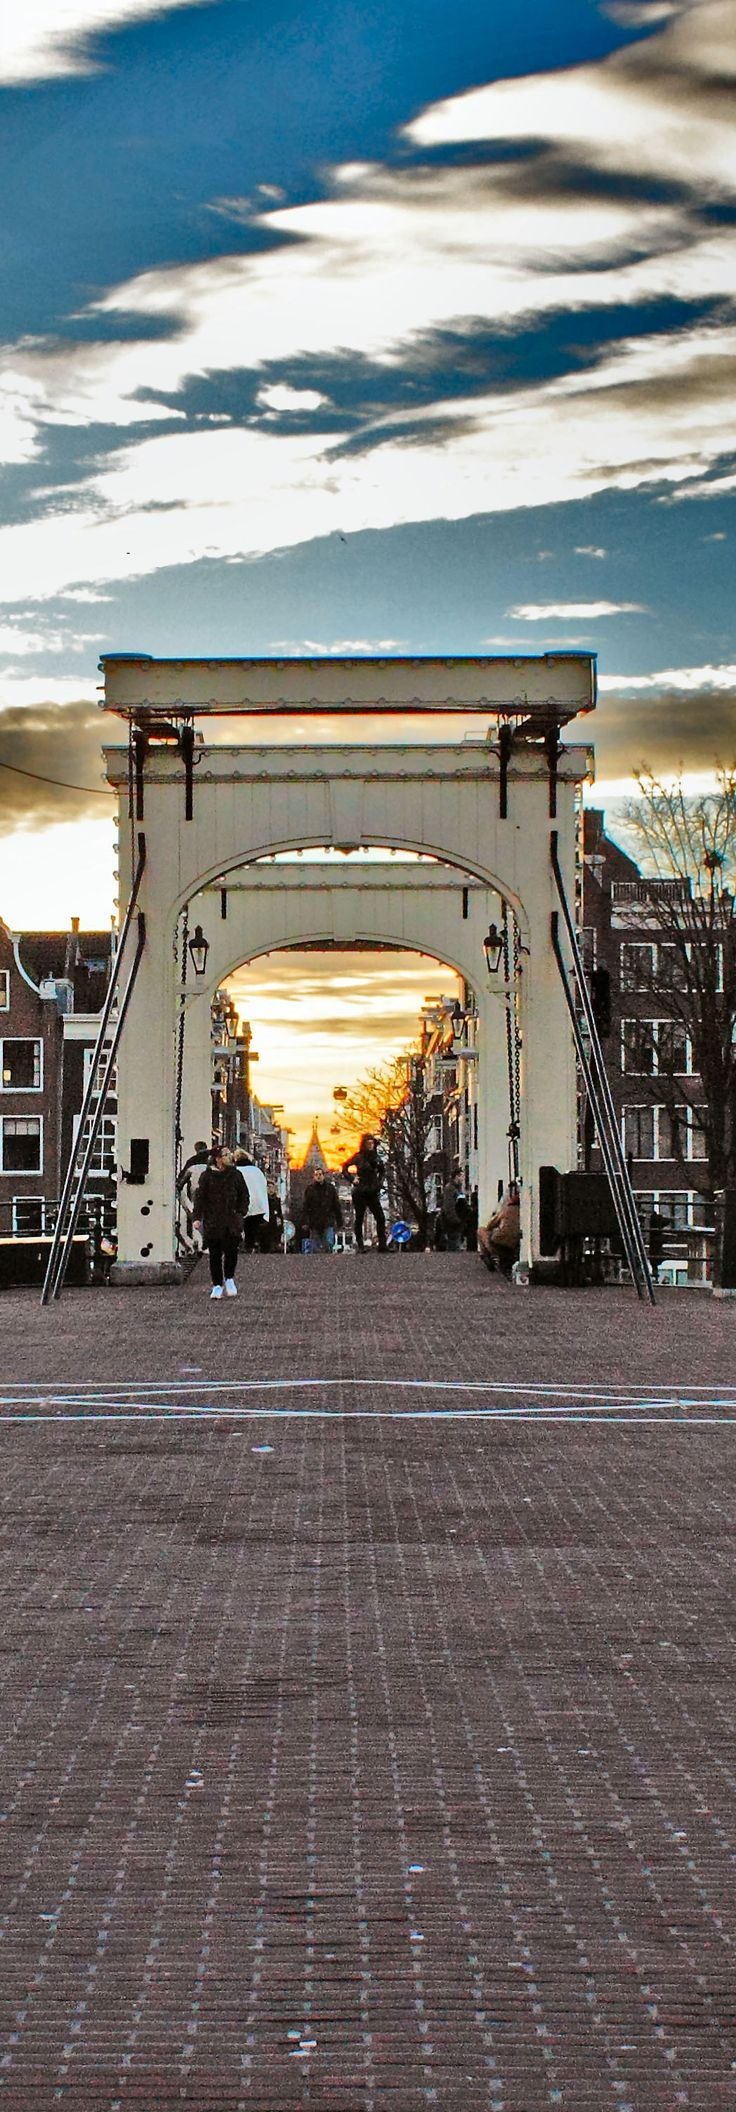 **Amsterdam, Skinny bridge ( by harry eppink) walked this bridge many mornings to the outdoor market